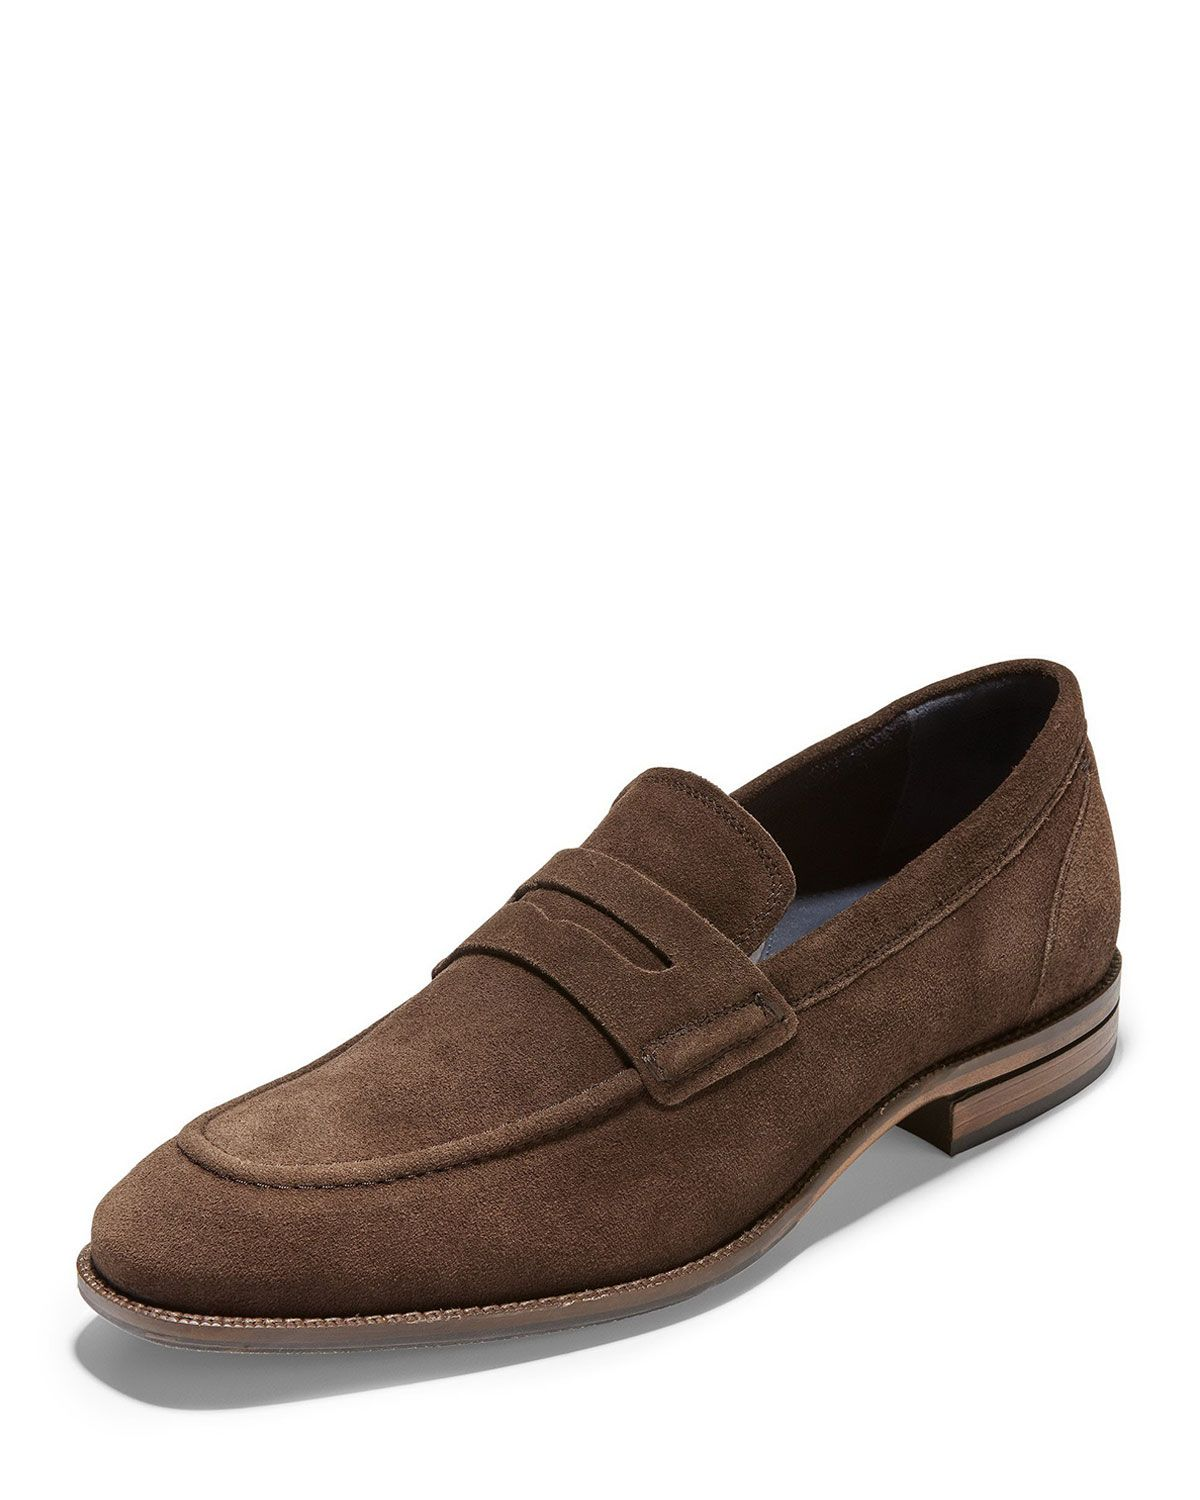 Cole haan mens shoes, Suede loafers